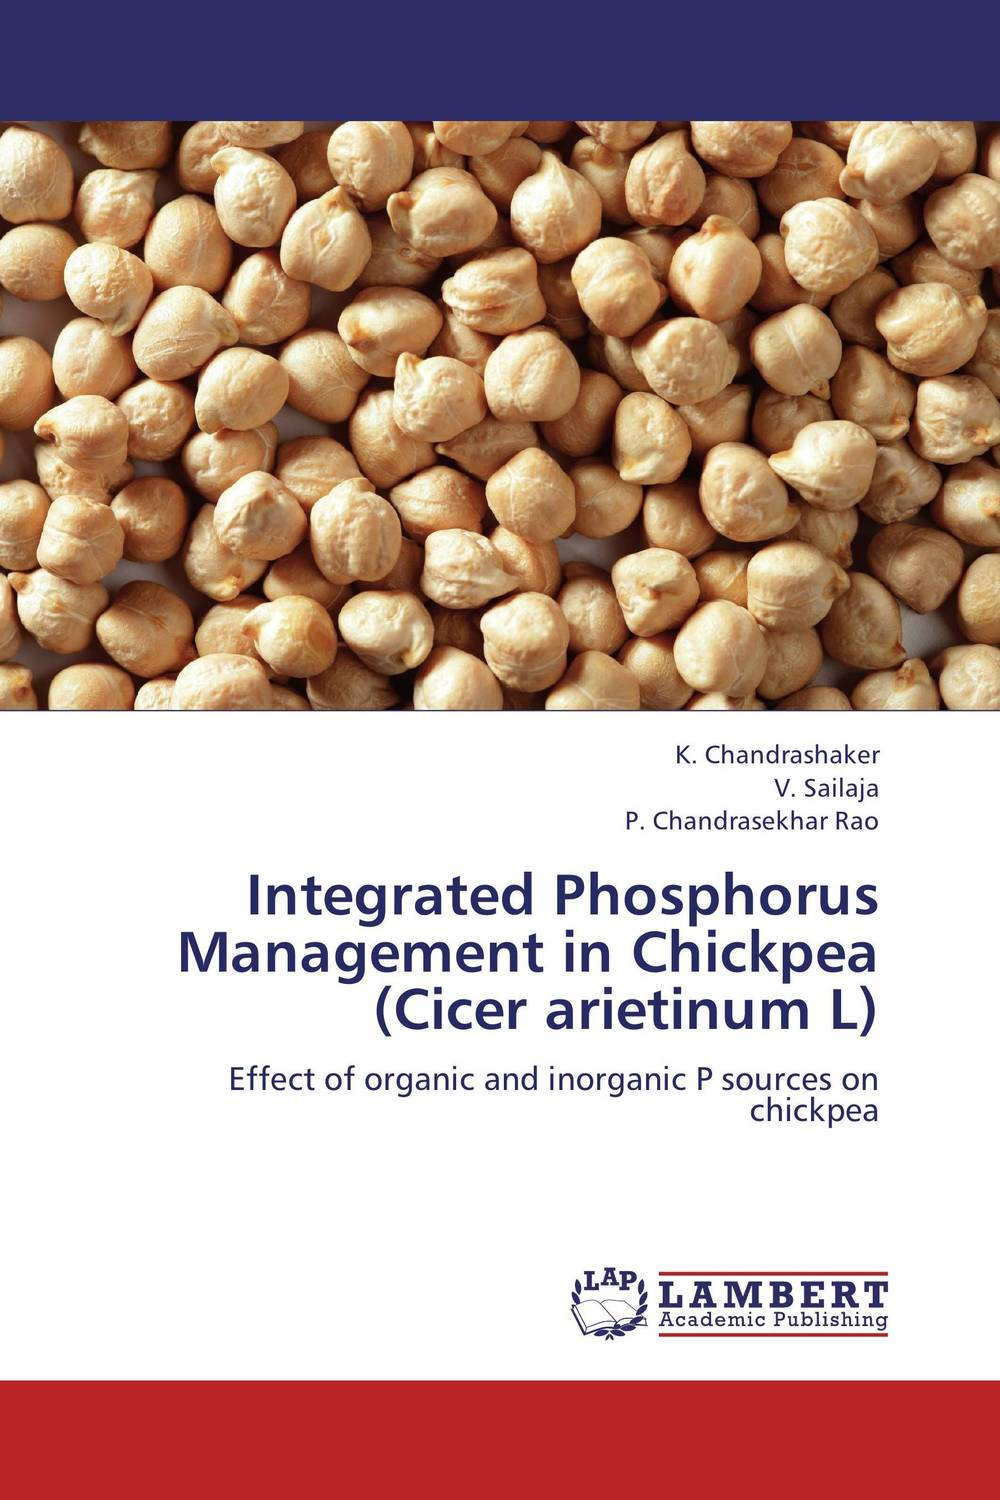 Integrated Phosphorus Management in Chickpea (Cicer arietinum L) ravindra kumar jain nod factors and nodulation process by rhizobia in cicer arietinum